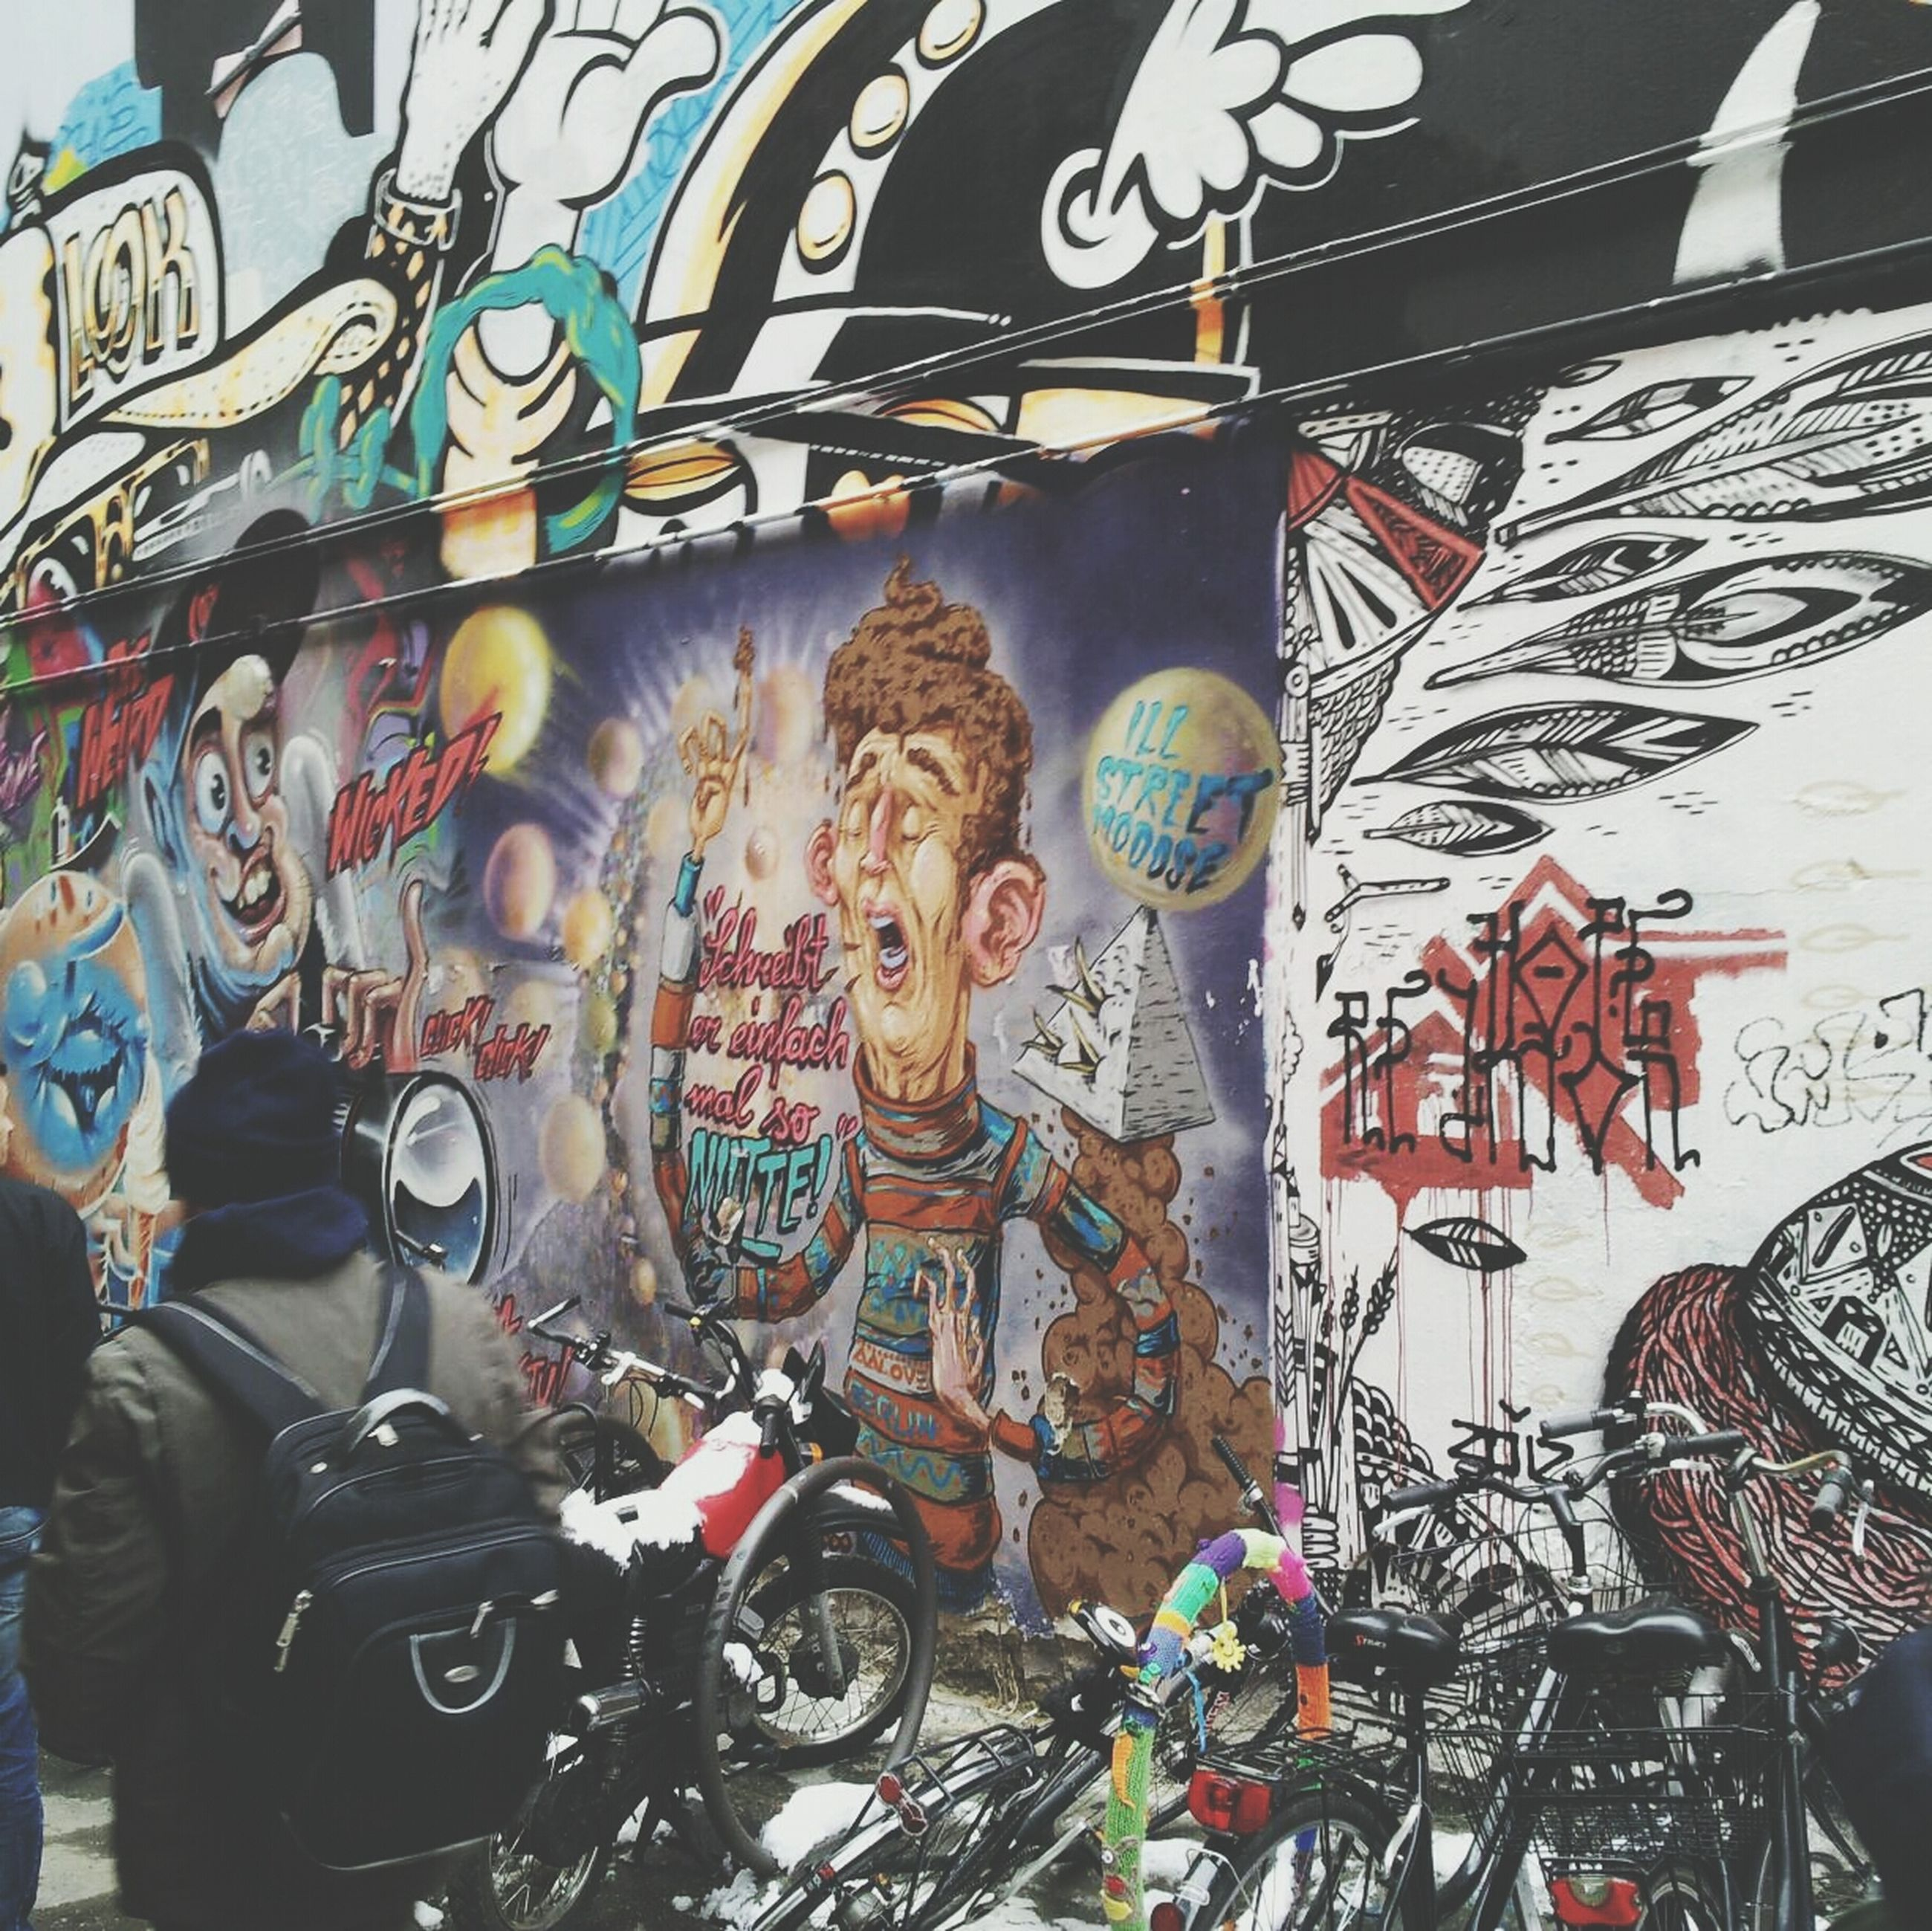 art and craft, art, creativity, graffiti, human representation, bicycle, built structure, architecture, wall - building feature, land vehicle, sculpture, multi colored, transportation, building exterior, animal representation, day, statue, street art